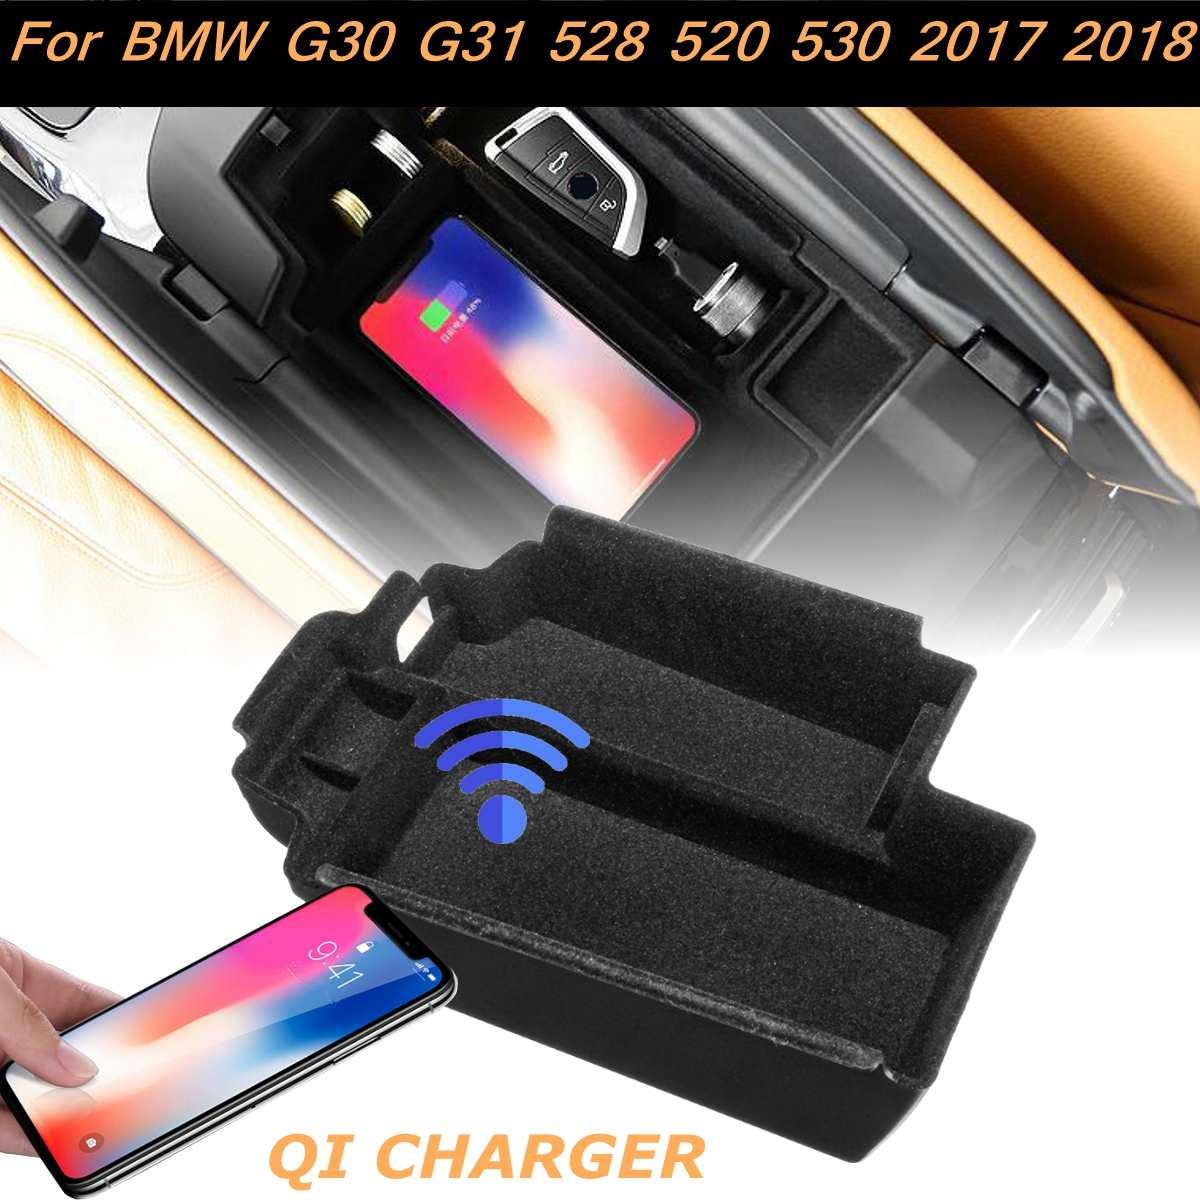 ABS Phone Wireless Charging Central Armrest Storage Box For BMW G30 G31 5-Series 528 520 530 2017-2018 LHD